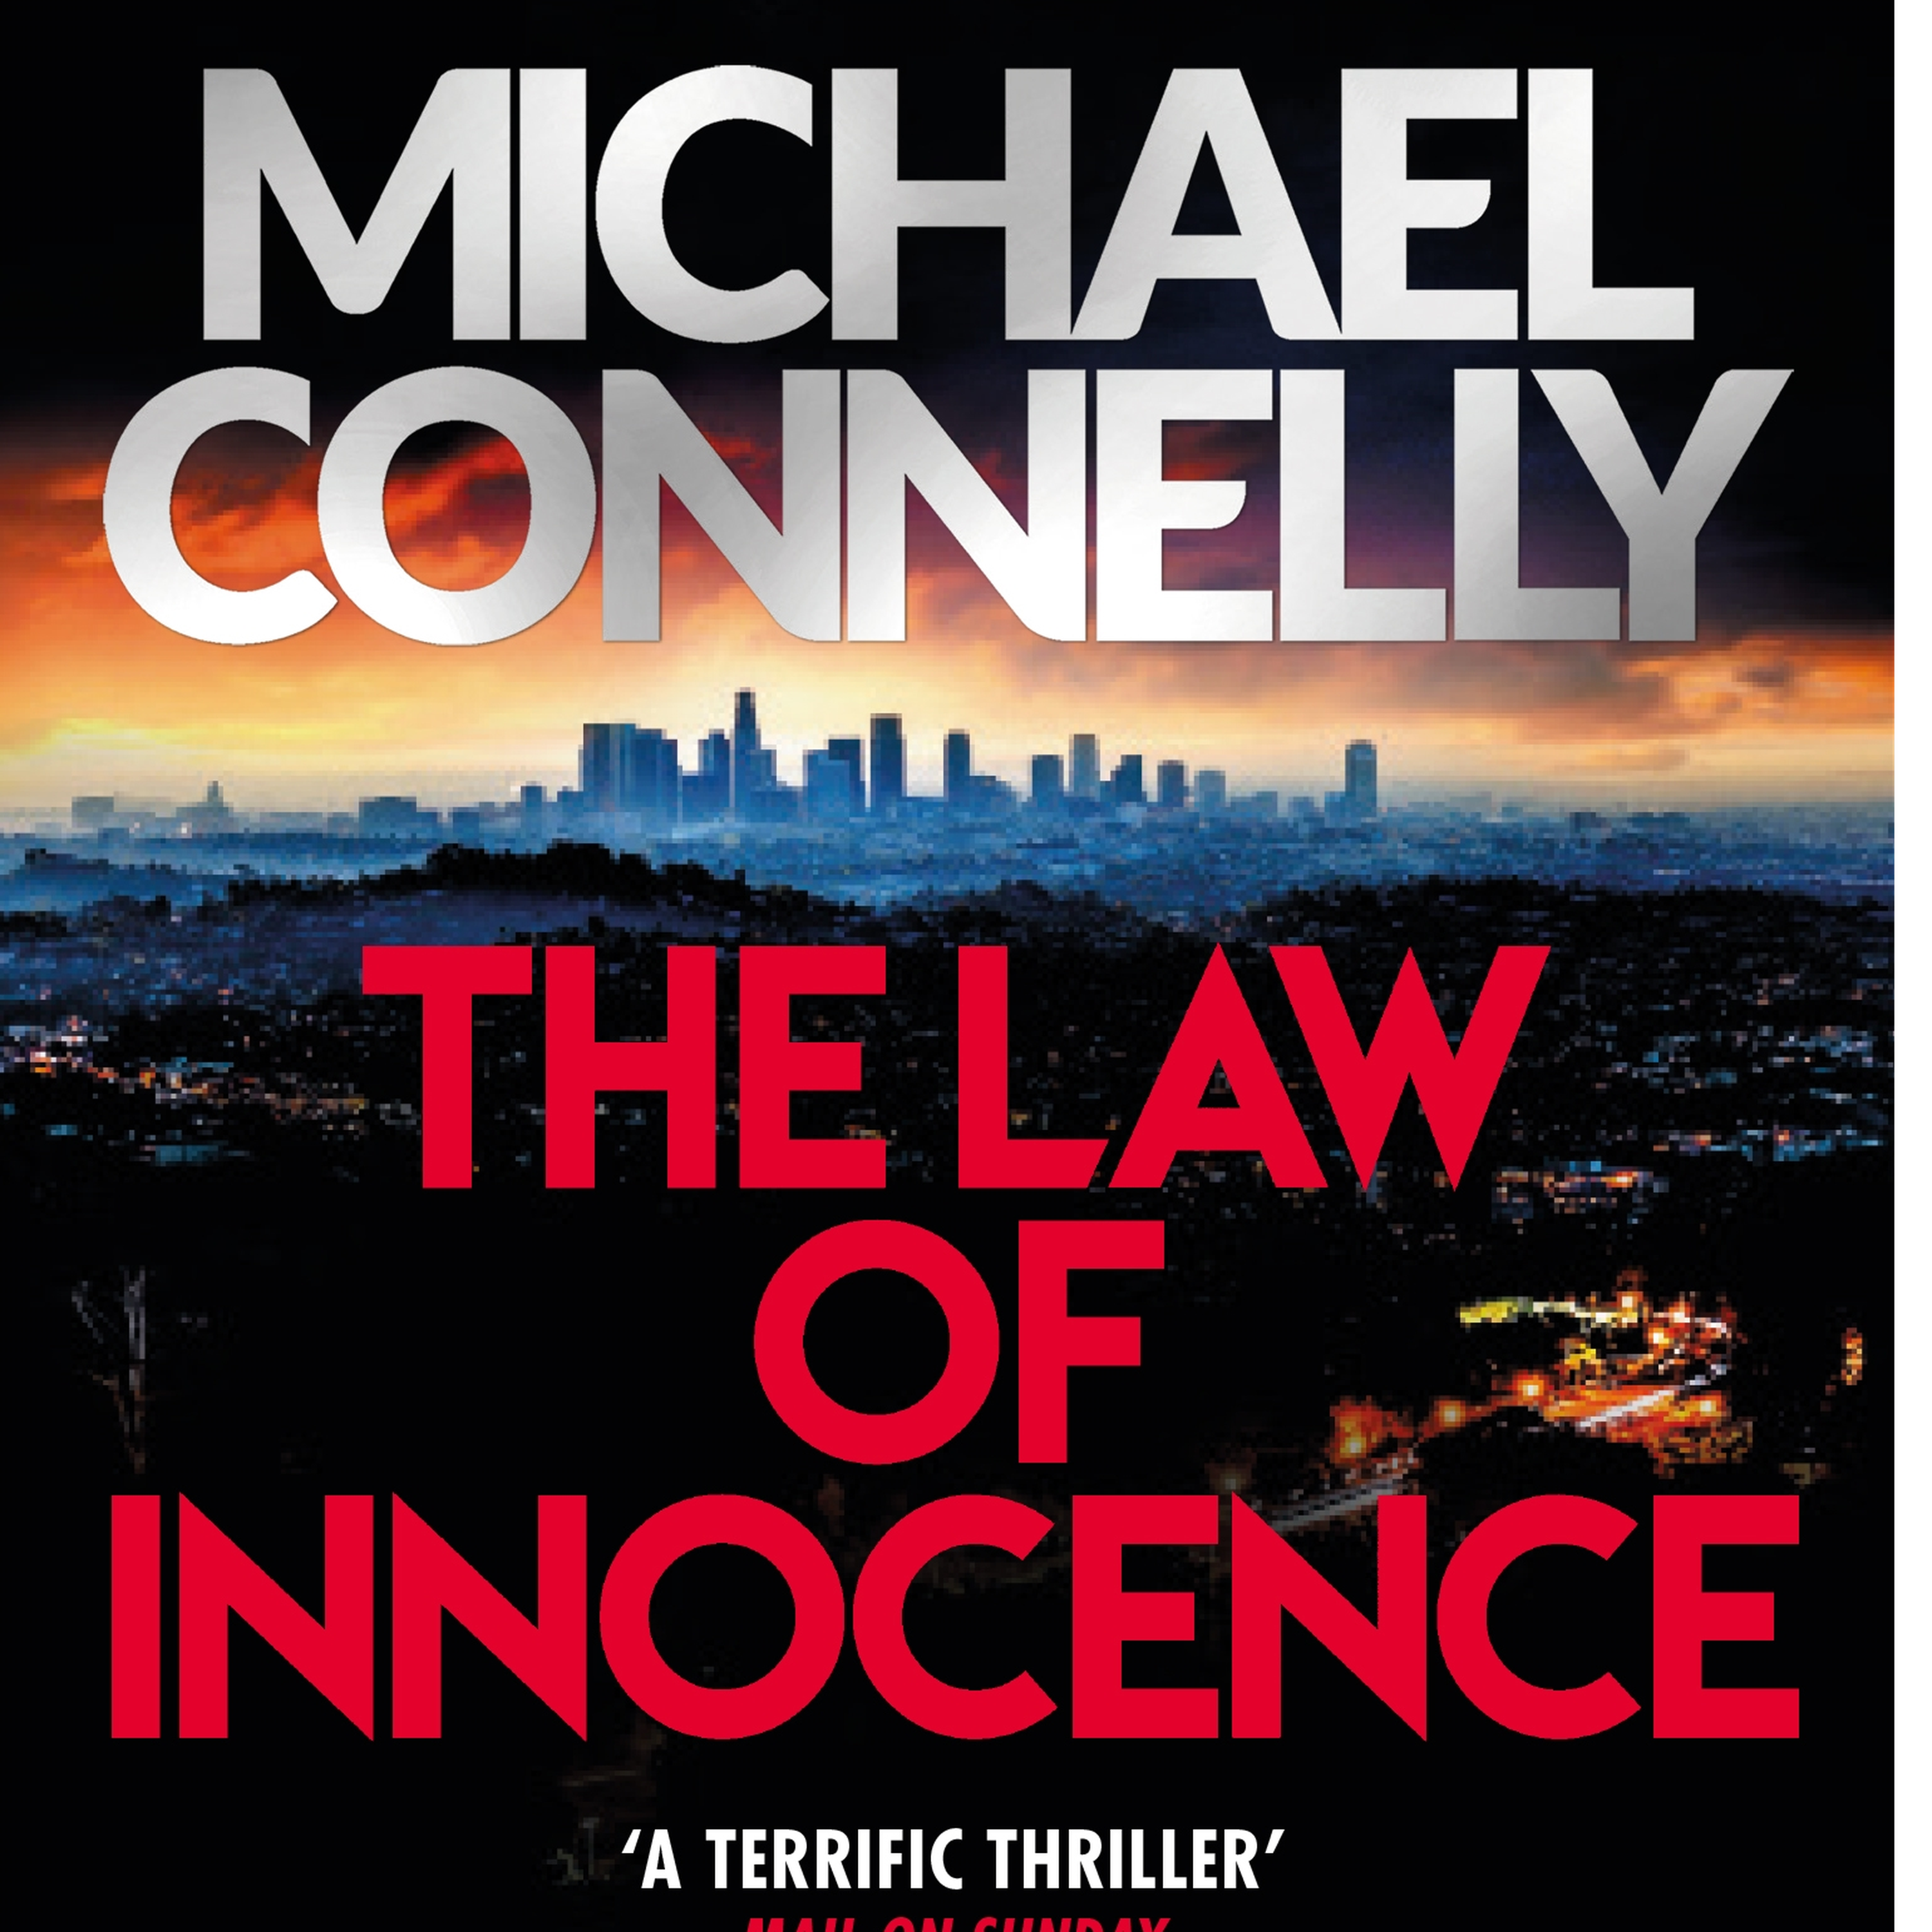 Michael Connelly (The Law Of Innocence)